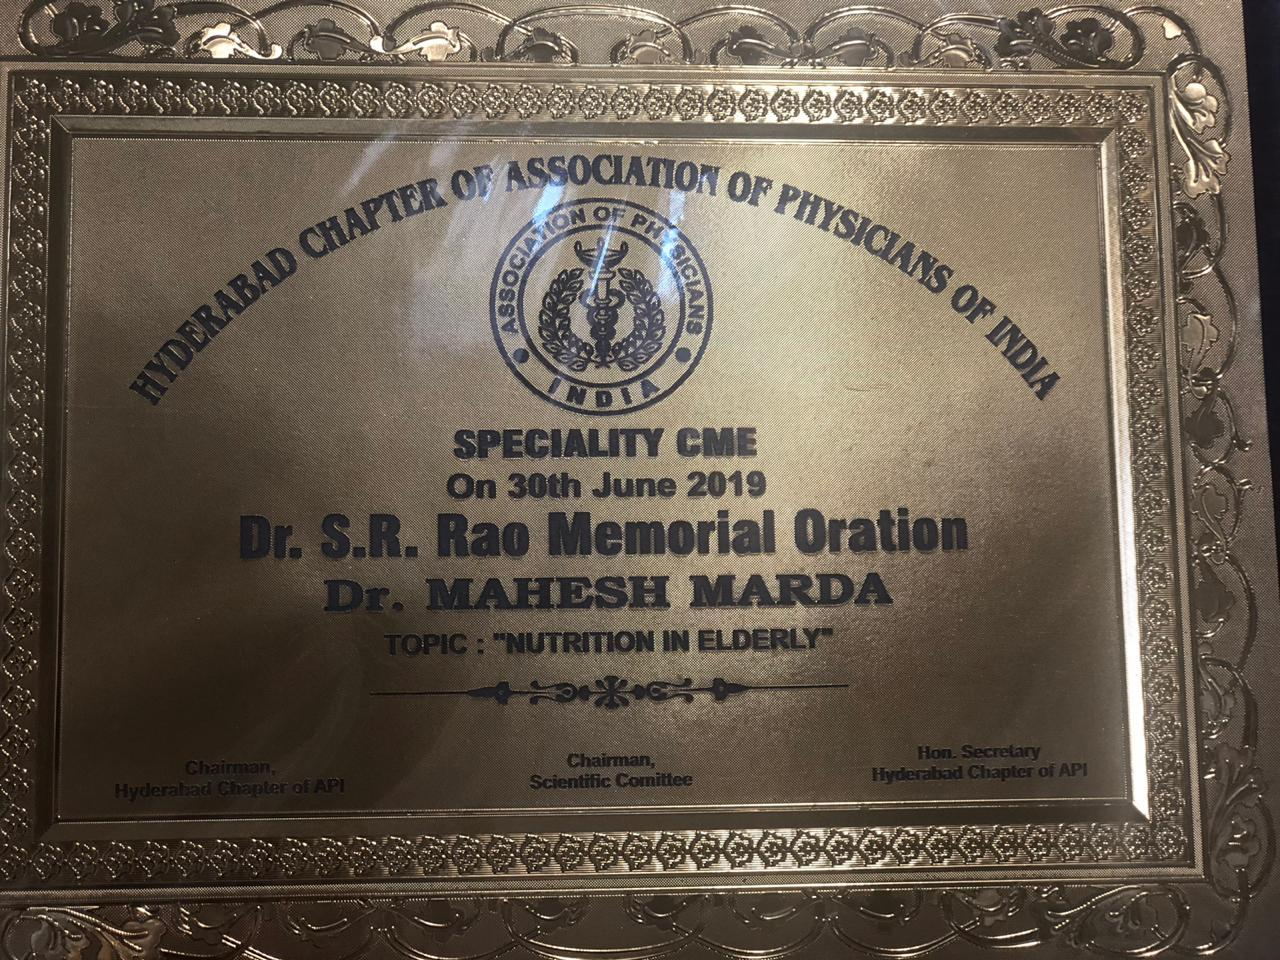 SPECIALITY CME - 2019 SCIENTIFIC PROGRAMME